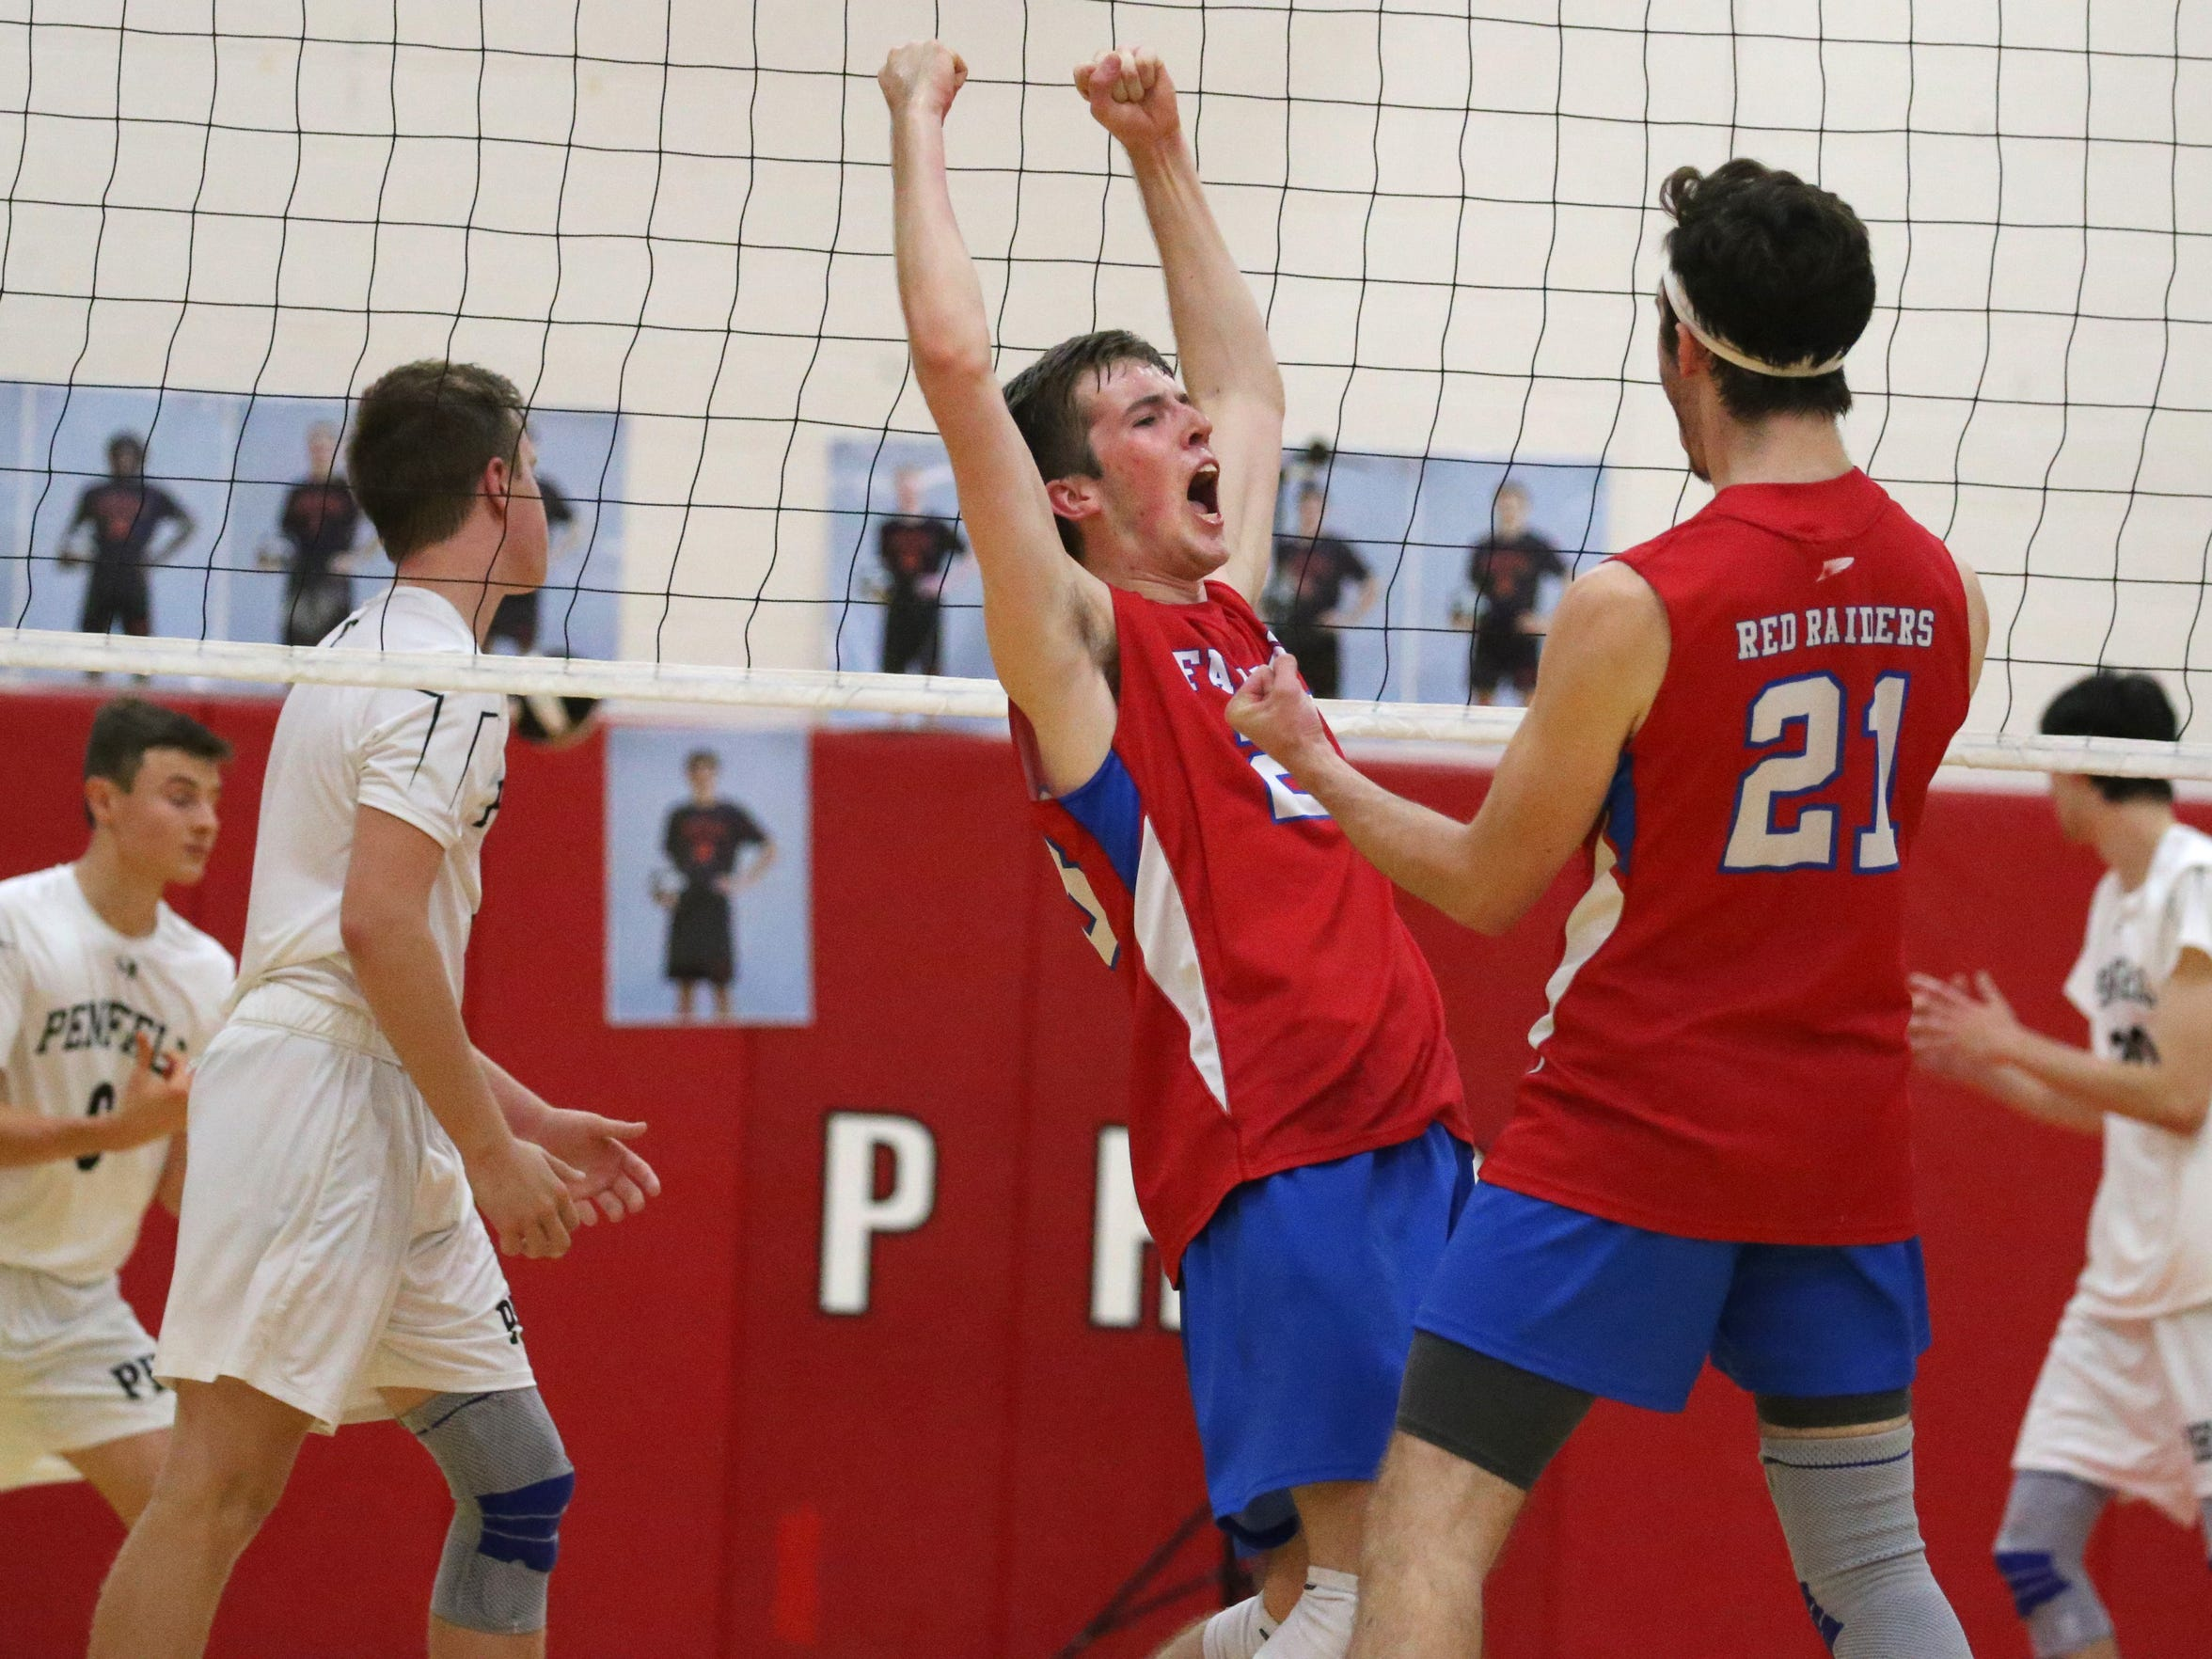 Fairport's Ryan Parker, left, celebrates his point with teammate Matt Beiter, right, in the opening set during their matchup Monday, Sept. 17 at Penfield High School.